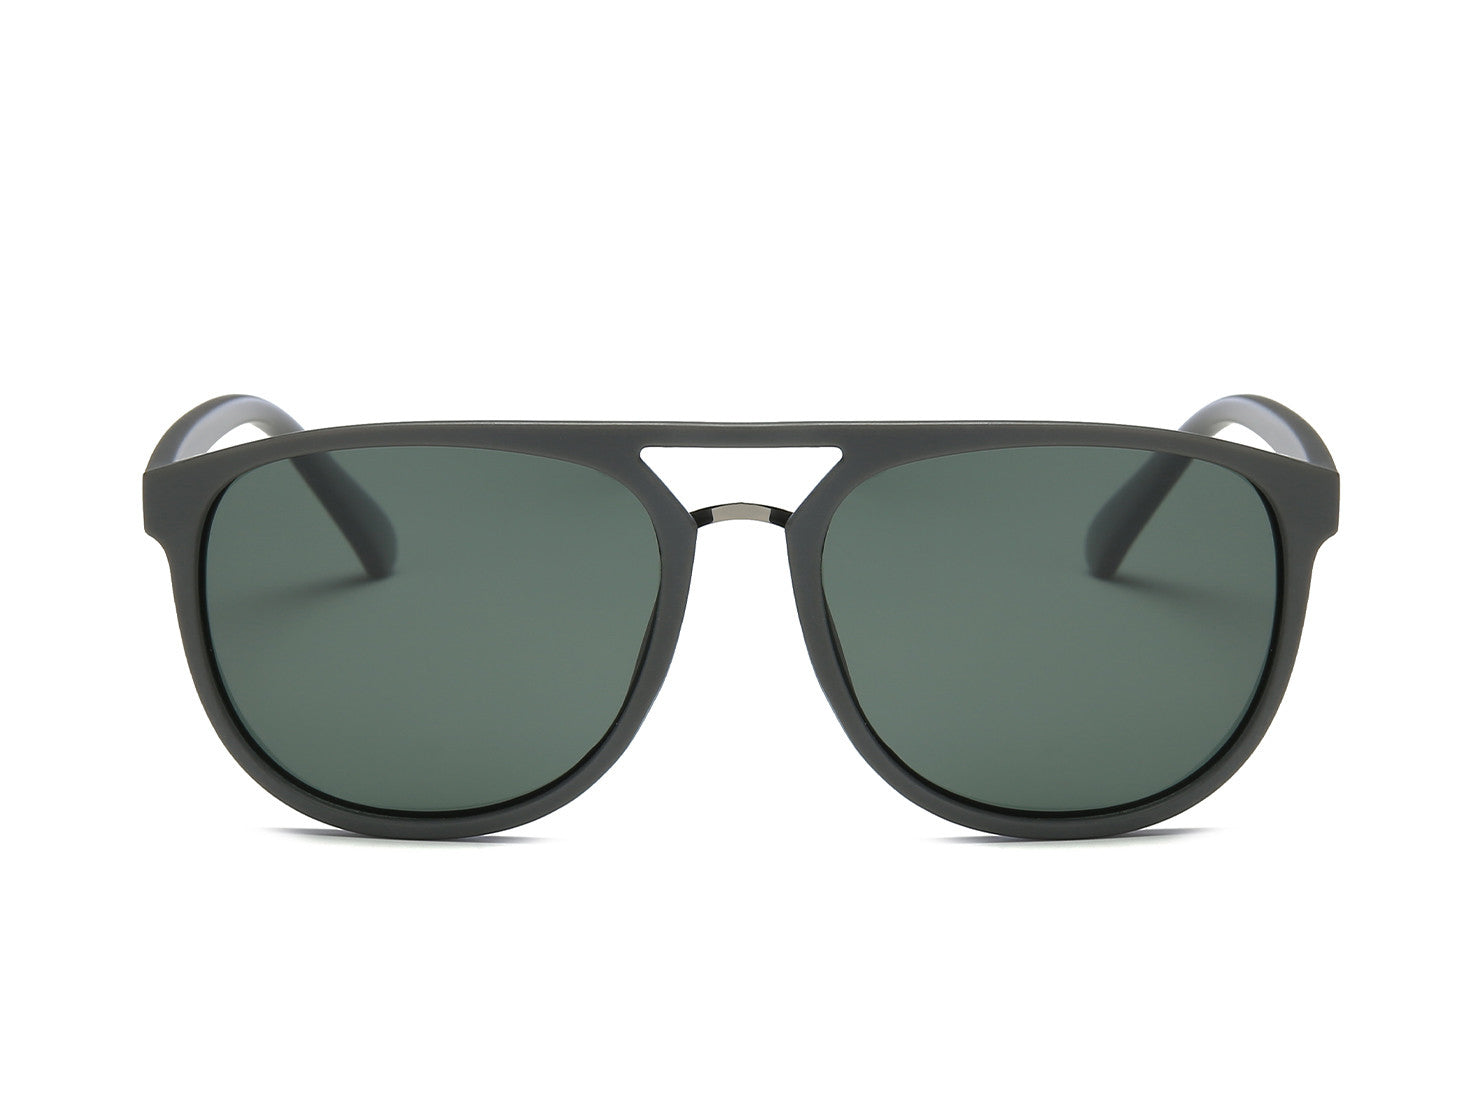 P1005 - Polarized Aviator Fashion Sunglasses - Wholesale Sunglasses and glasses